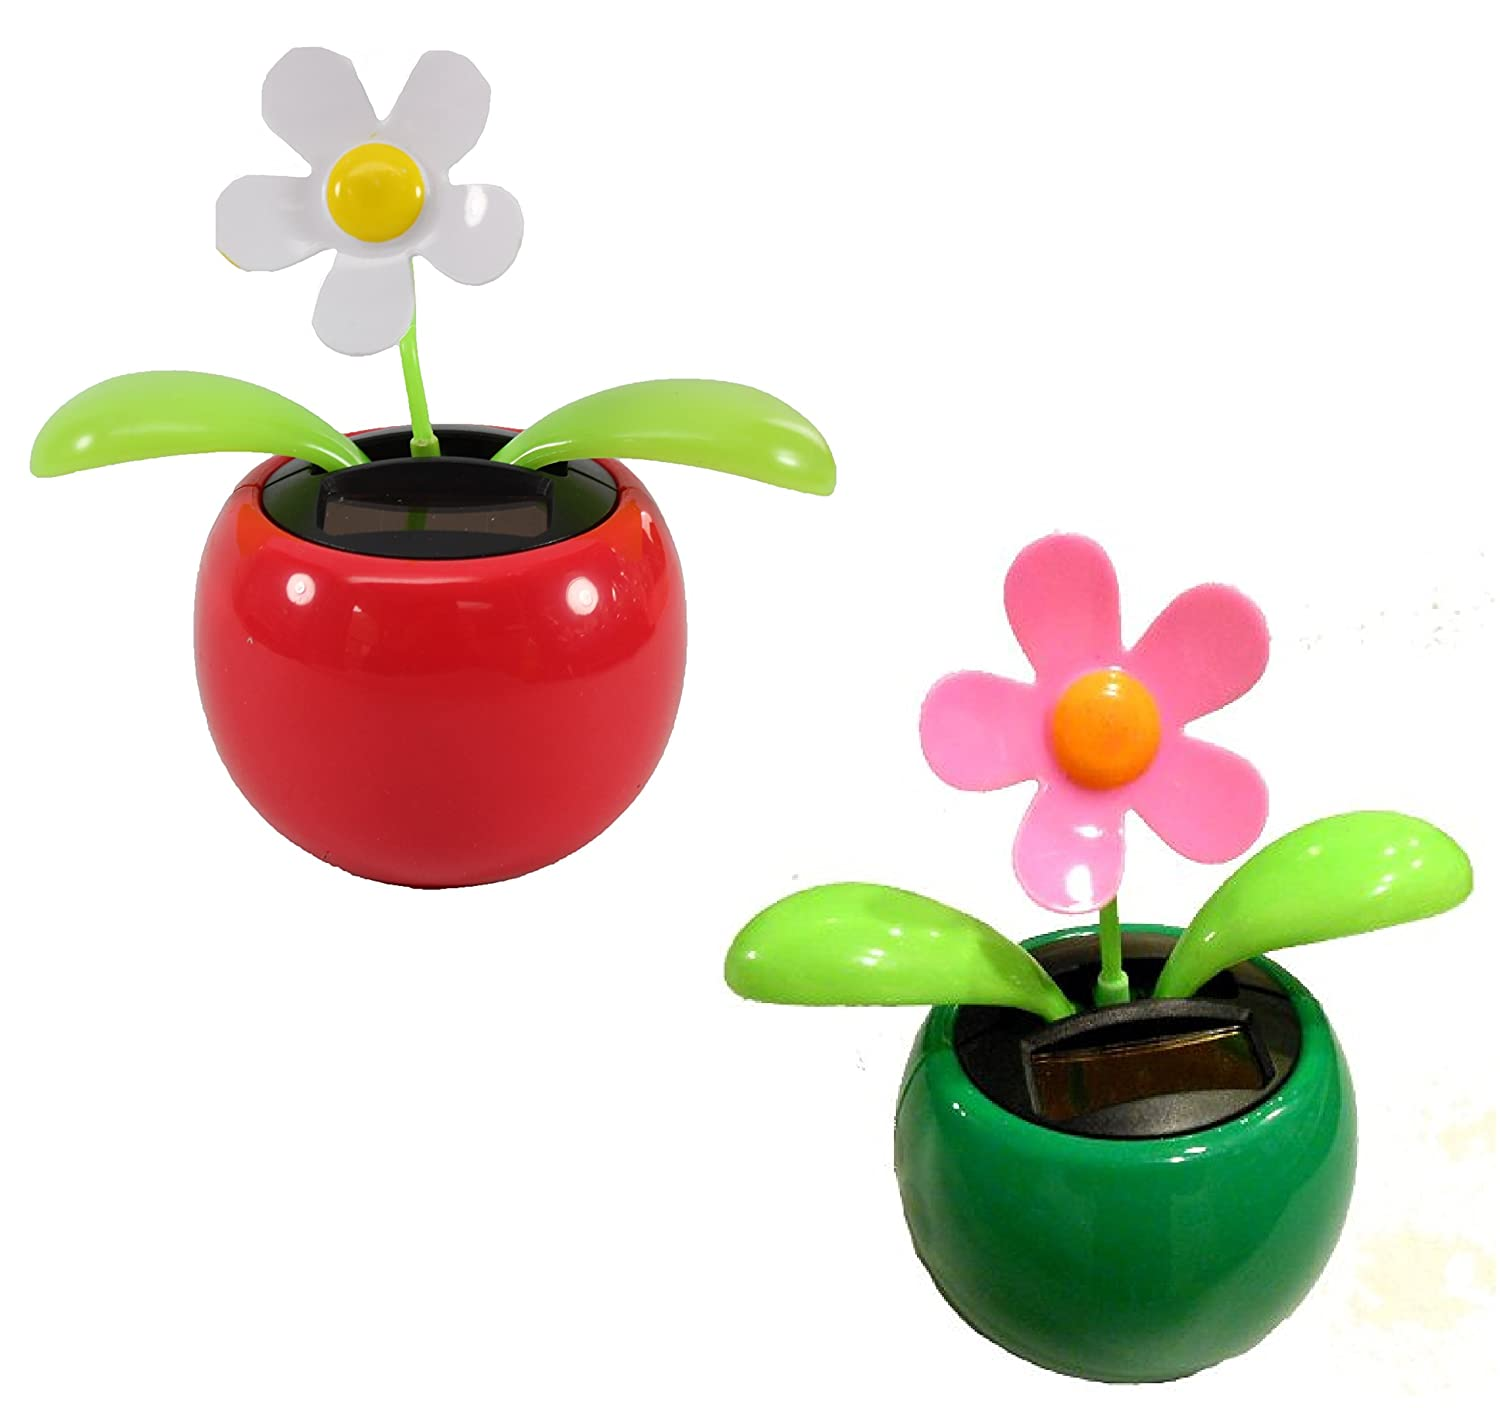 217 & Set of 2 Dancing Flowers ~ 1 White 1 Pink Daisy in Assorted Colors Pots Solar Toy Car Dashboard Home Decor Birthday Congratulatory Easter Gift